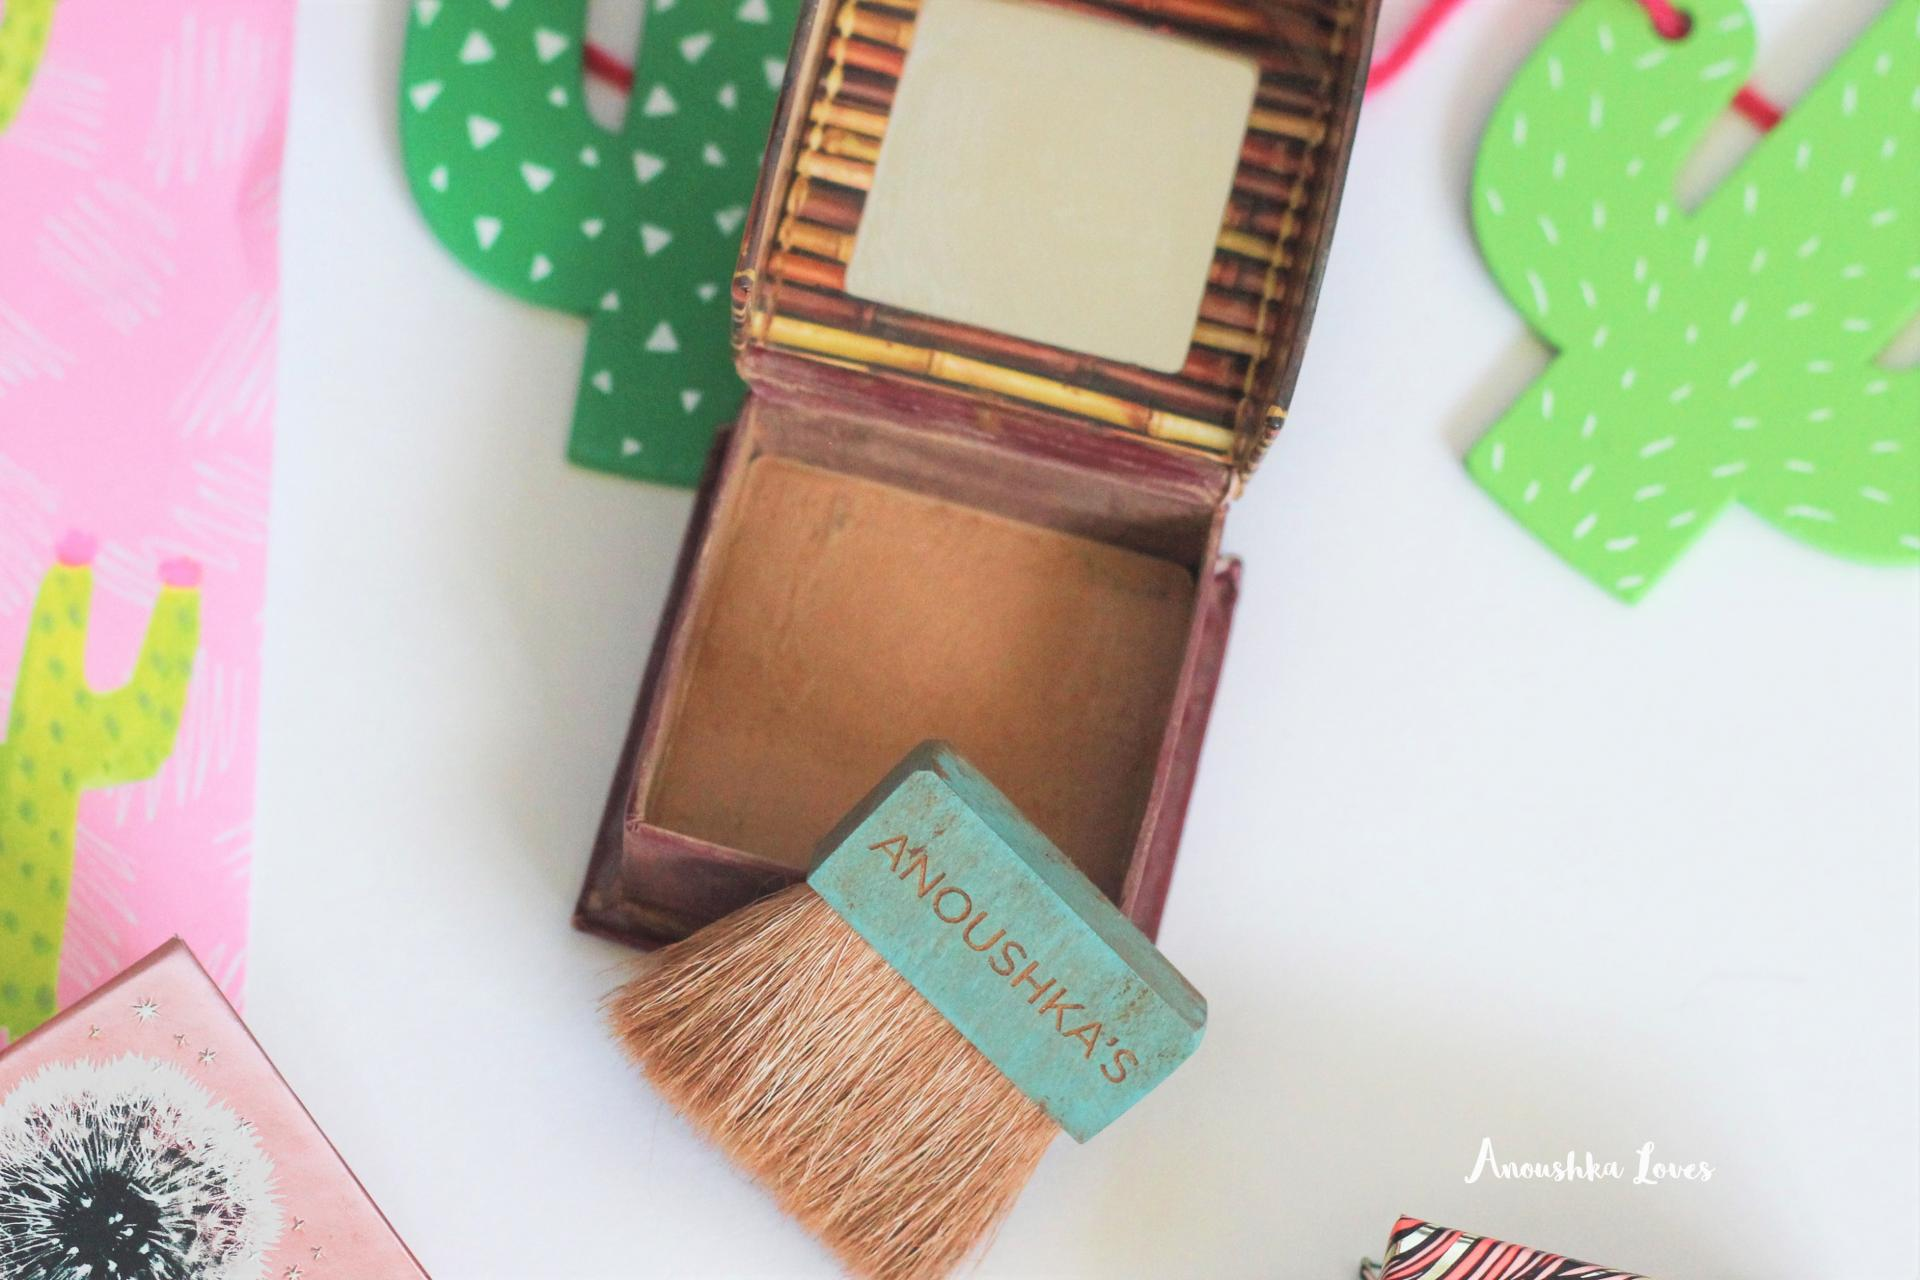 The Summer Face with Benefit Cosmetics Hoola Personalised Bronzer